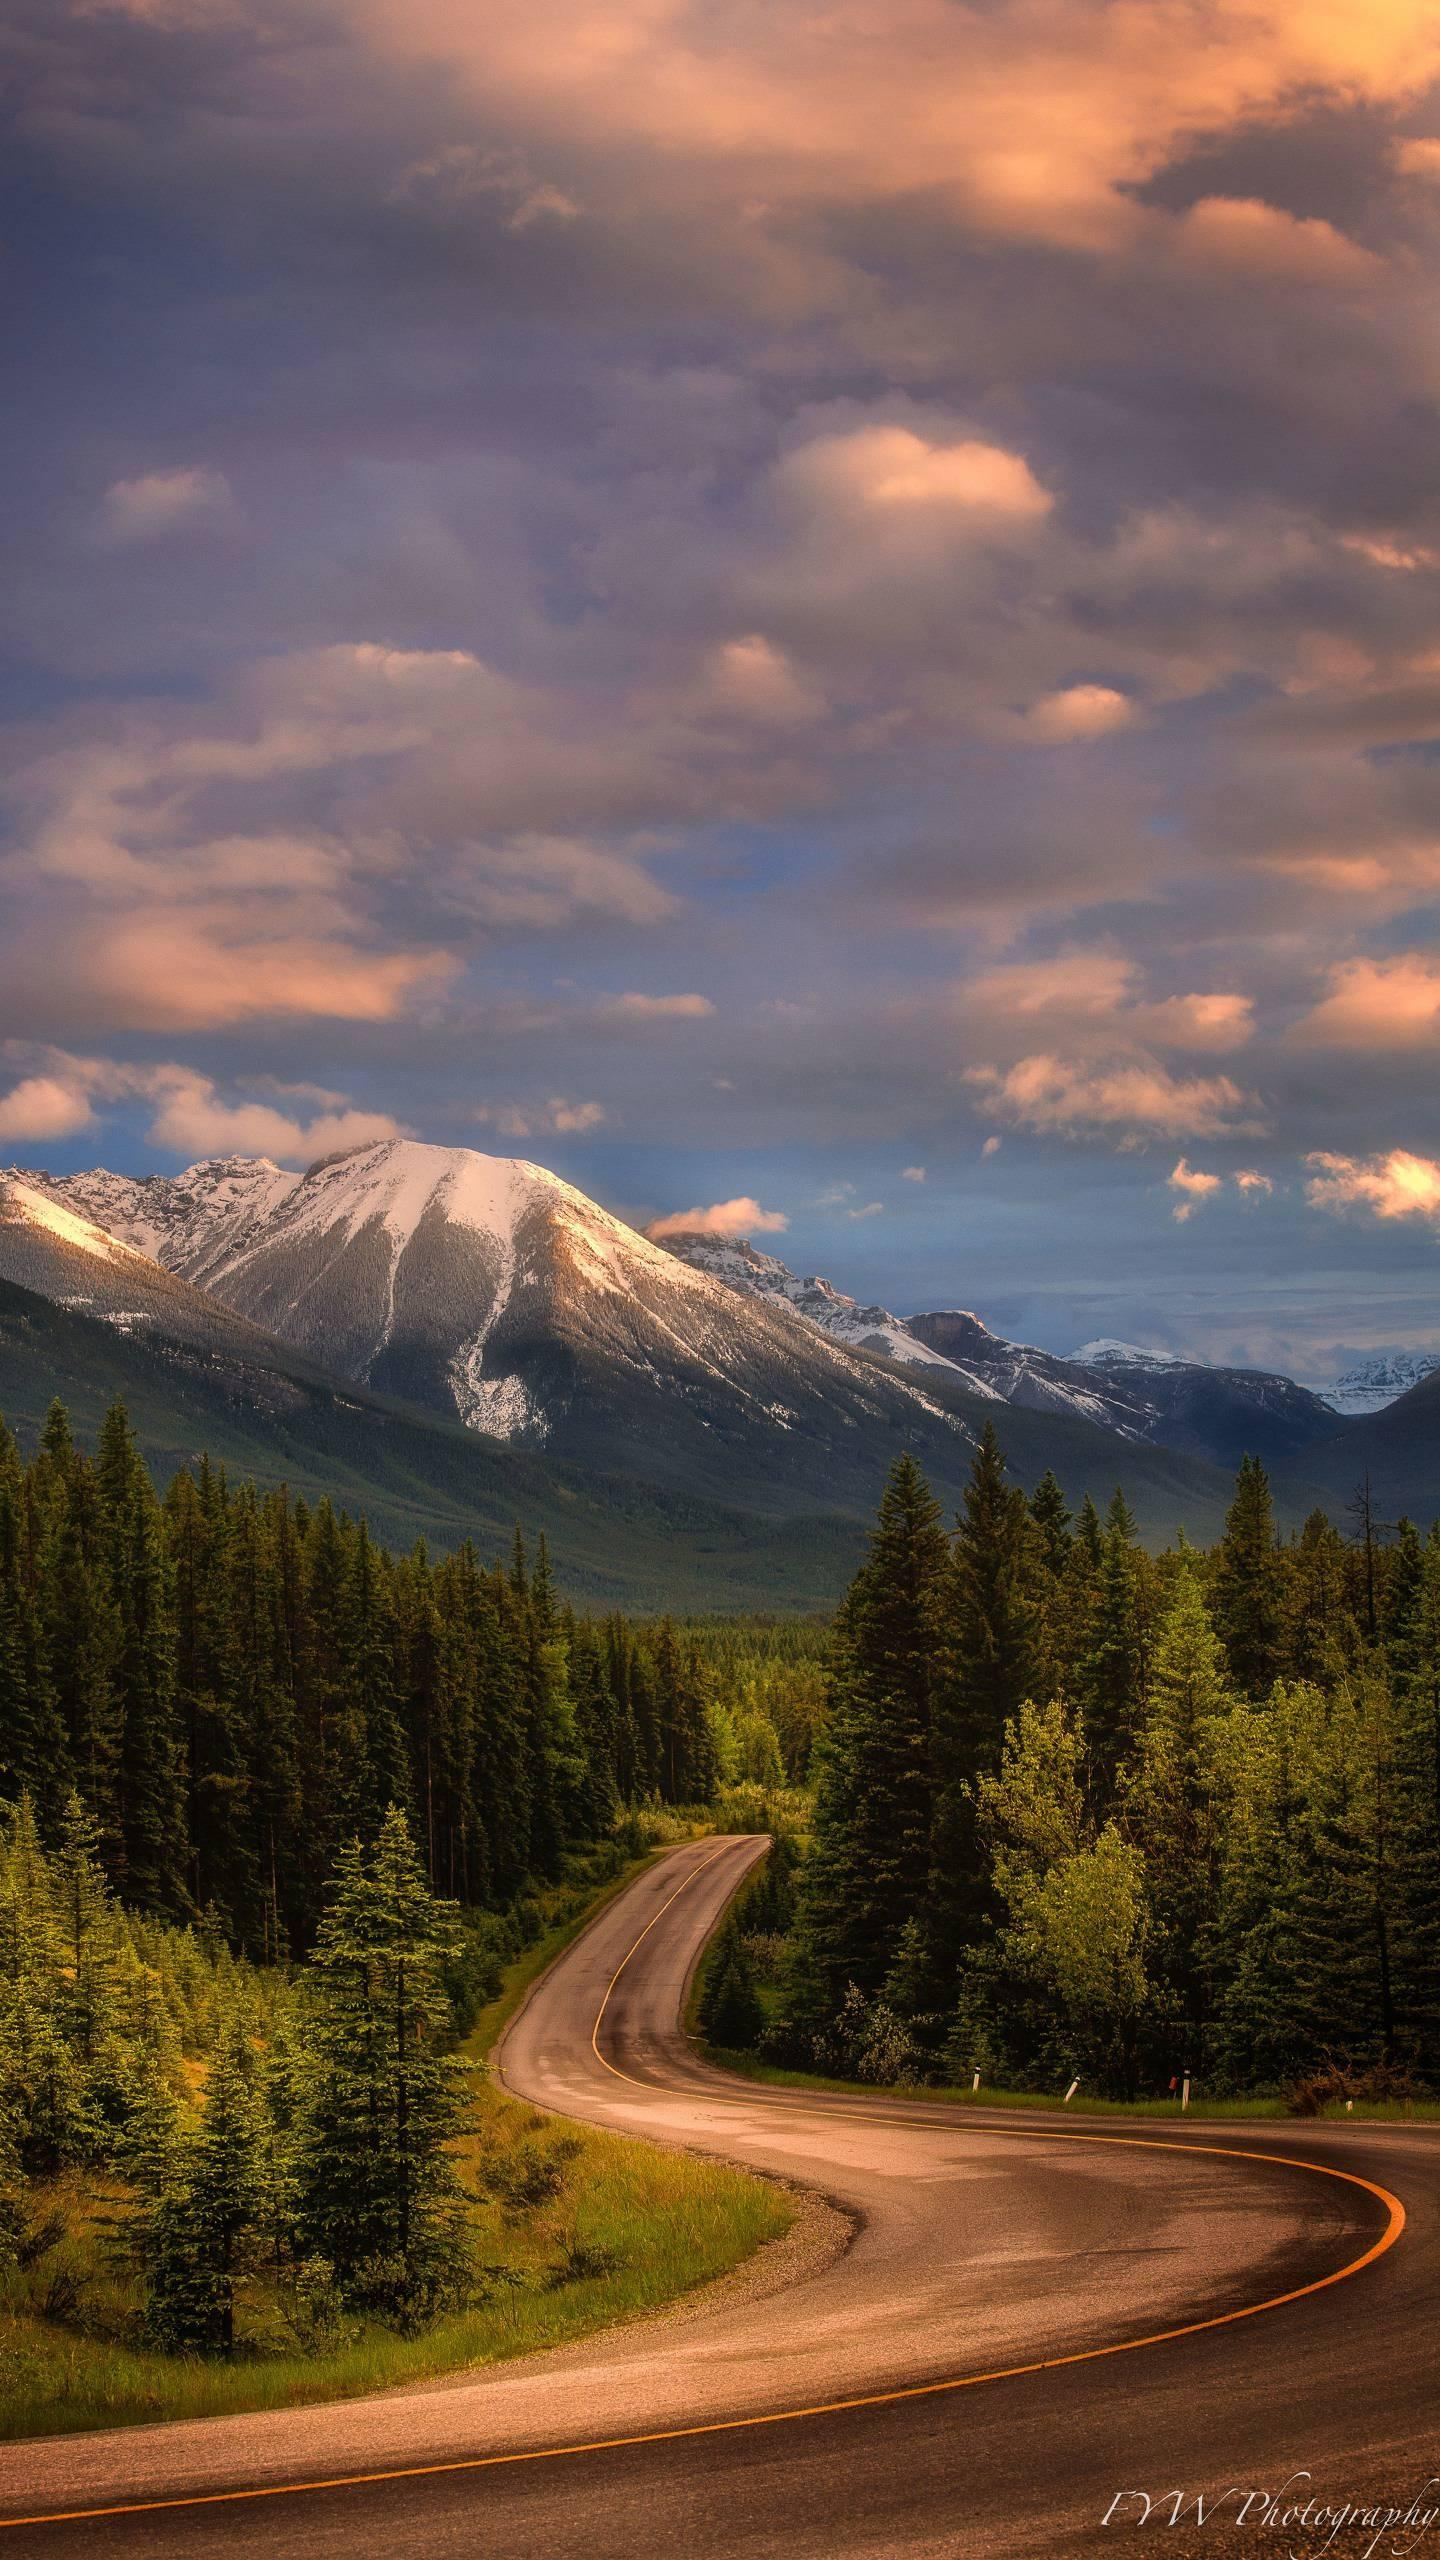 Canada. From the east coast to the west coast, the country's cities are vibrant and have incredible natural wonders.